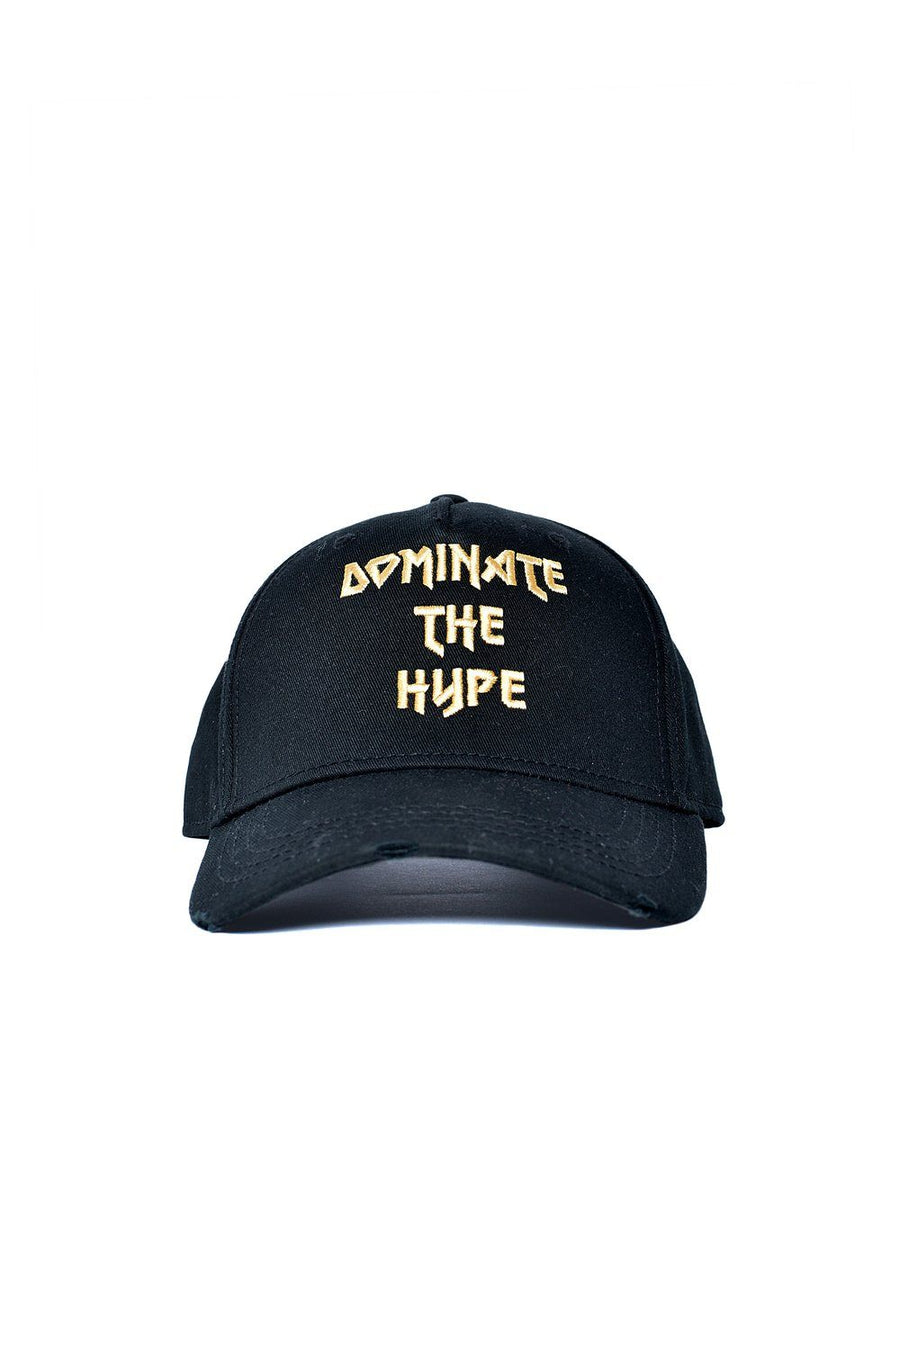 PEGADOR - Dominate the Hype - Dominate the hype Destroyed Cap Black gold - PEGADOR - Dominate the Hype